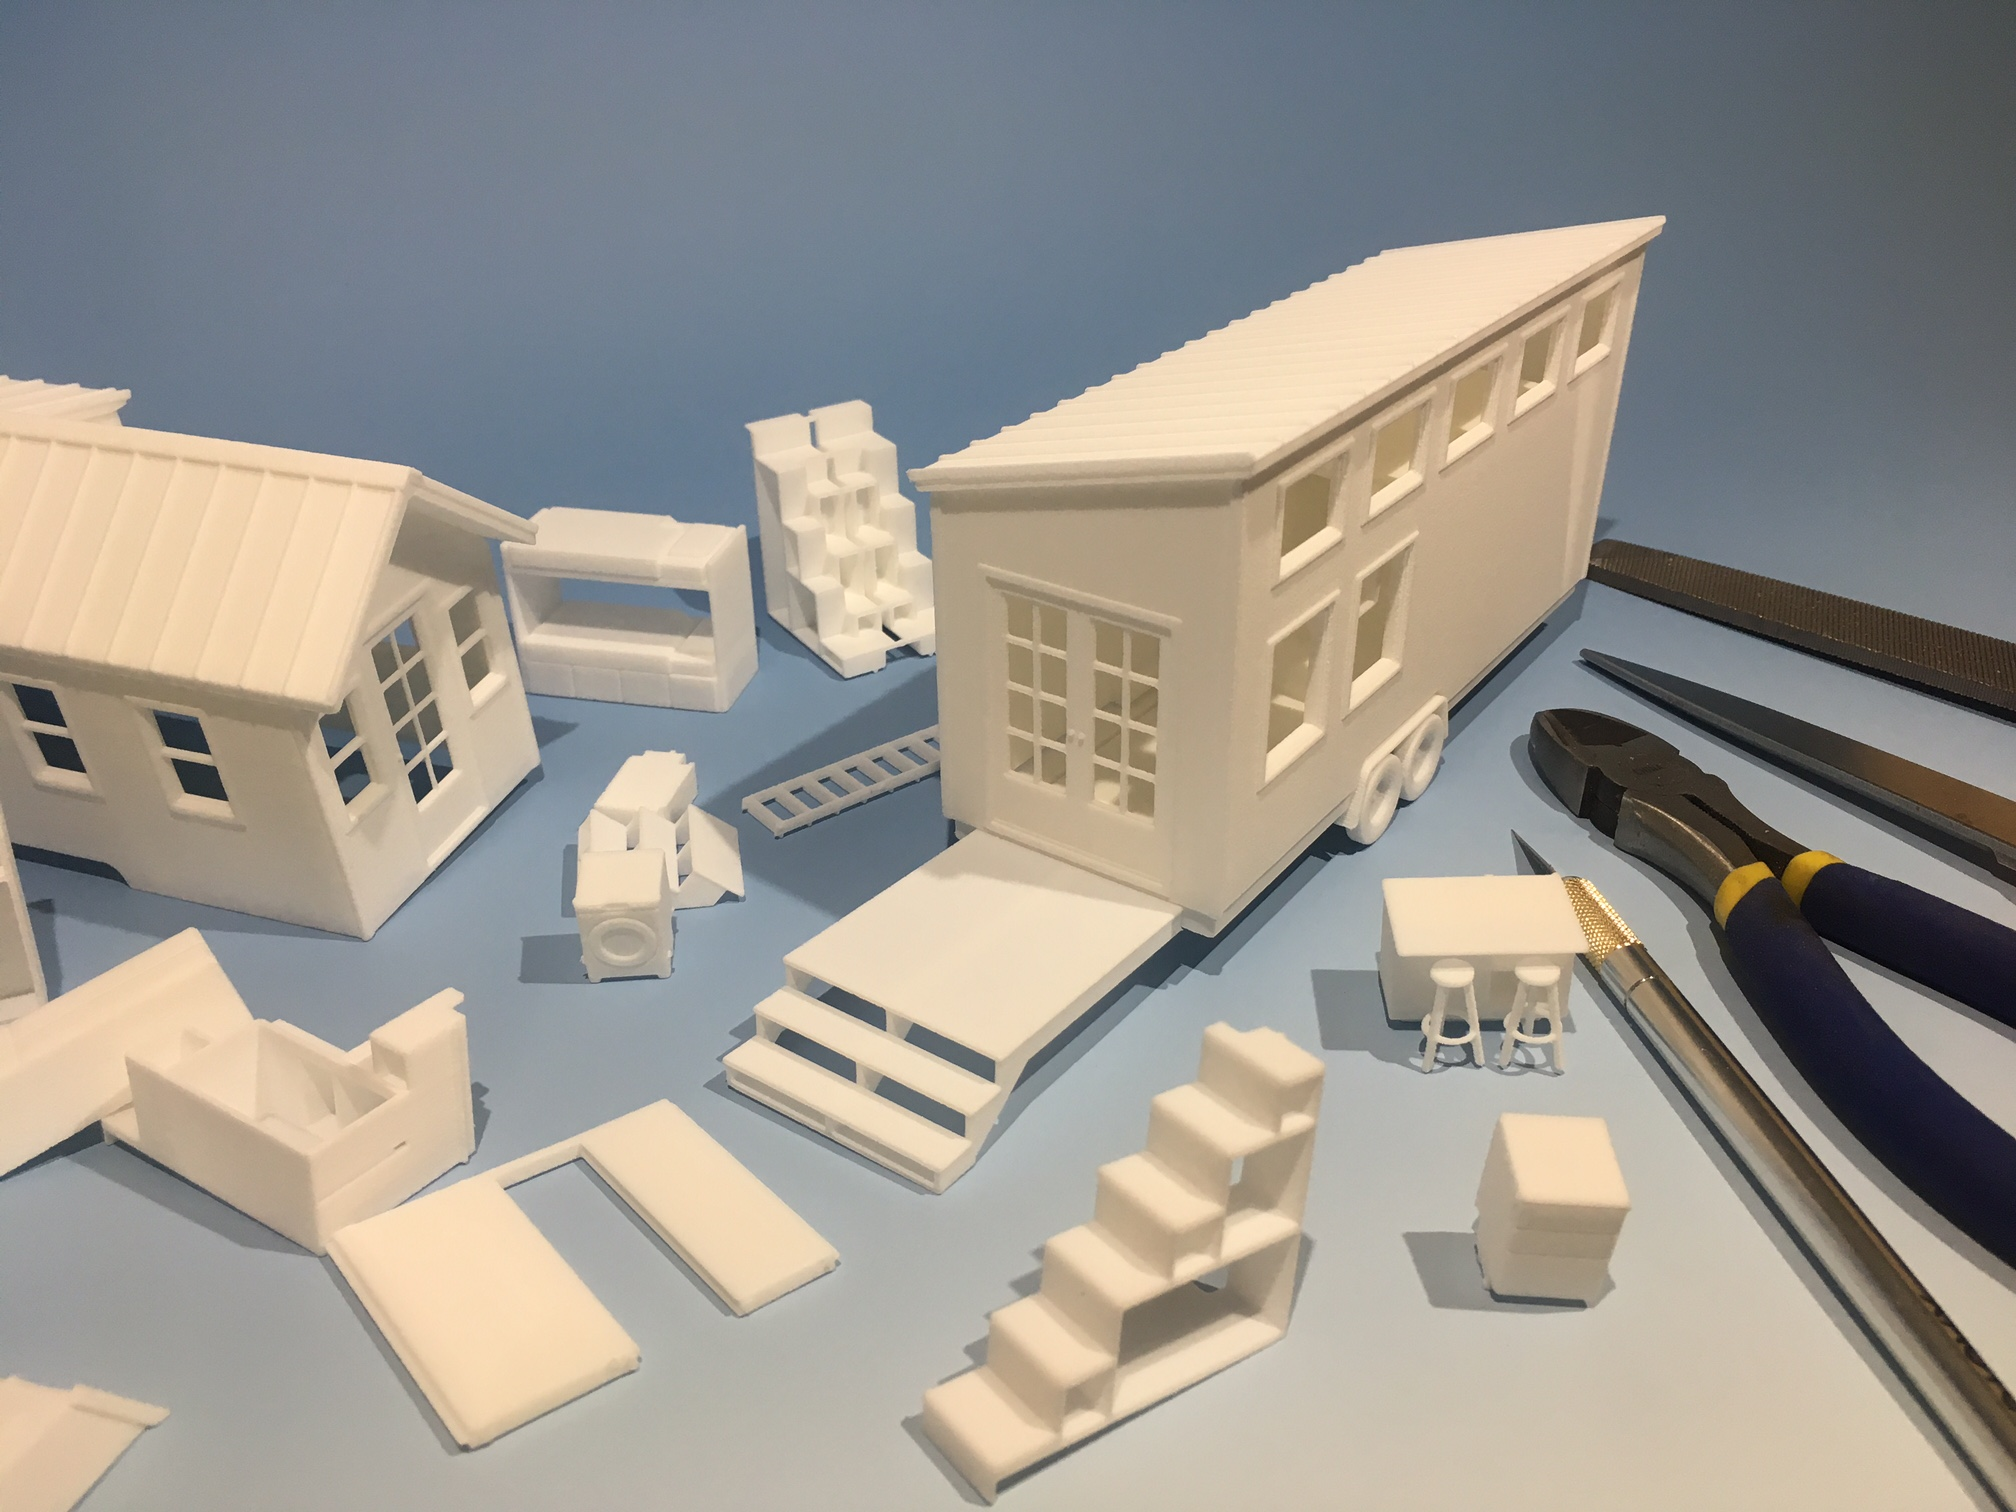 3D-Printed-Tiny-House-Scale-Model